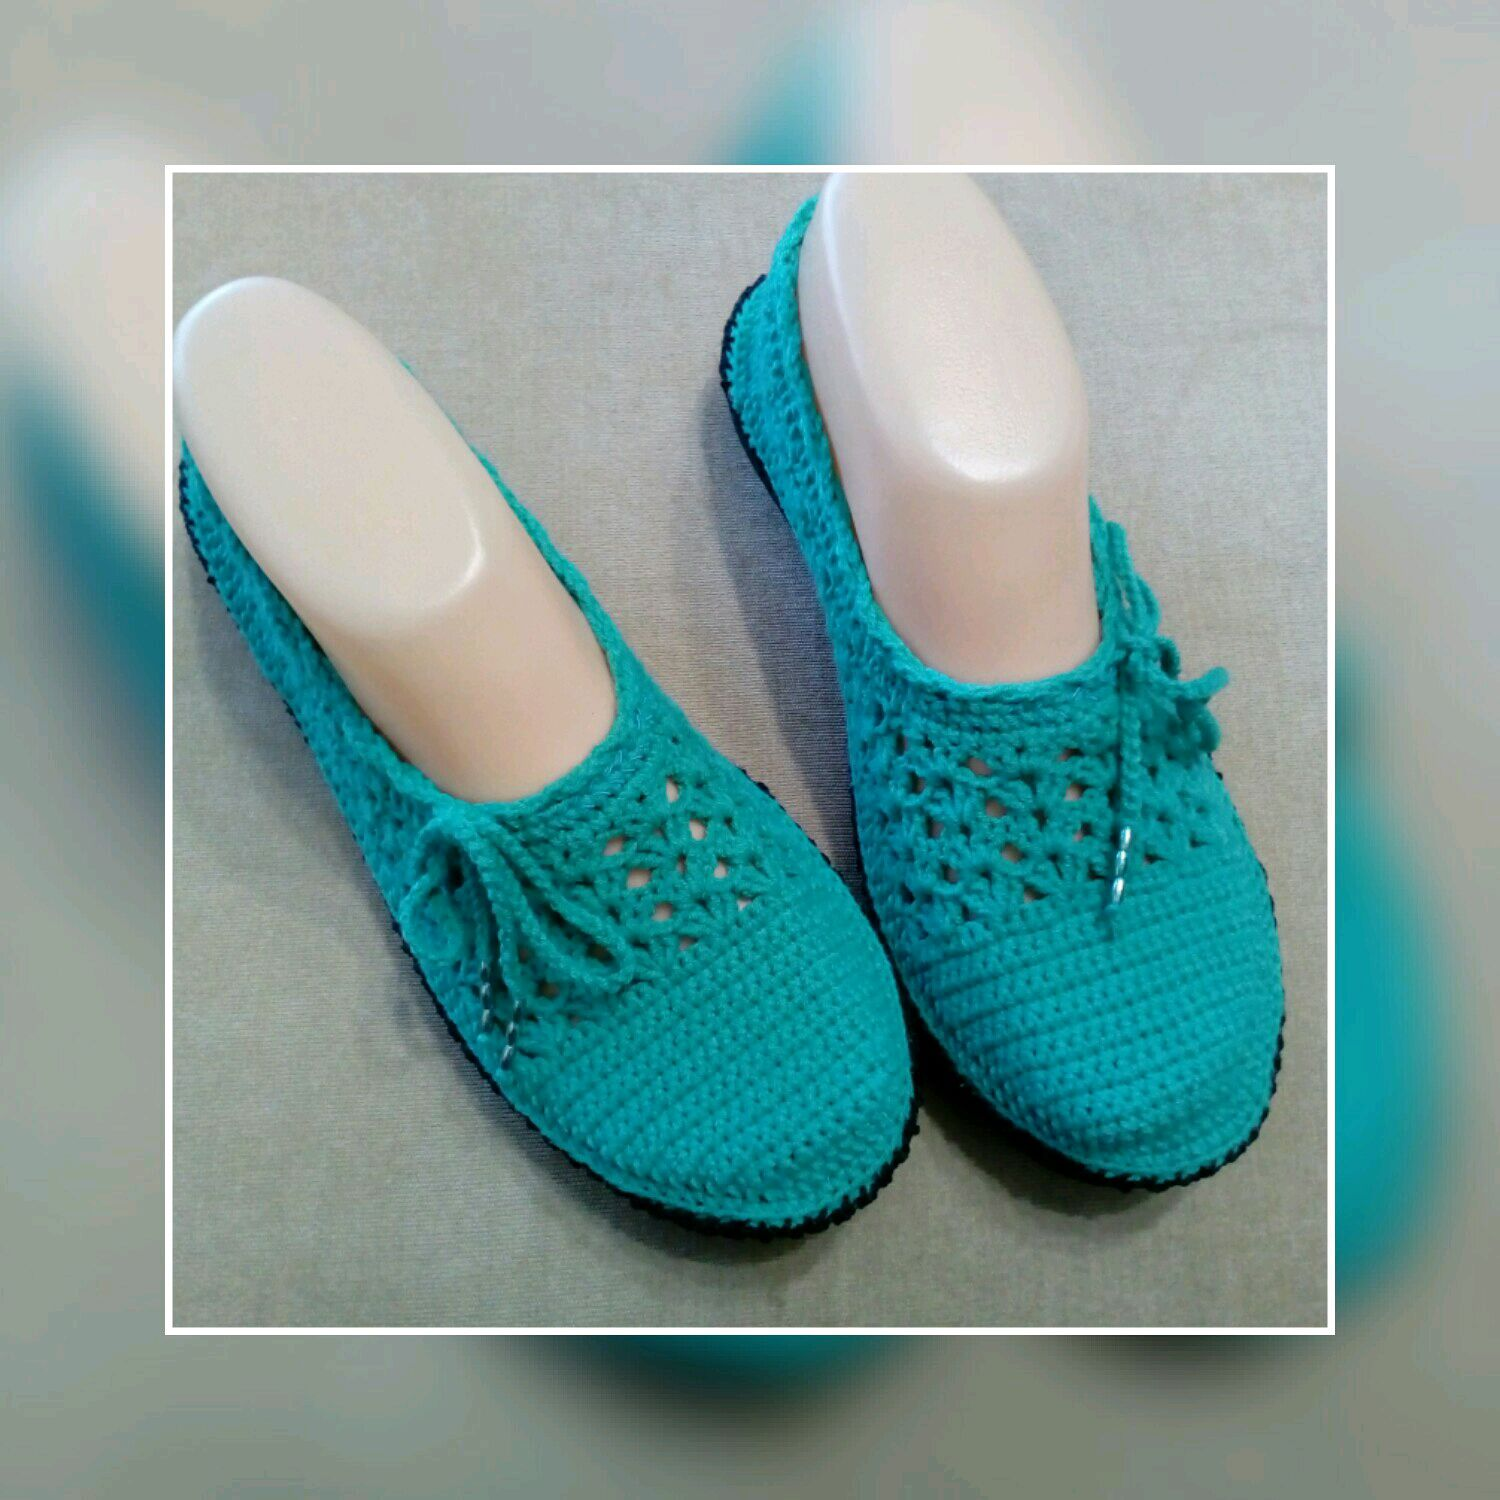 Knitting Shoes Suppliers : Knitted shoes custom loafers emerald shop